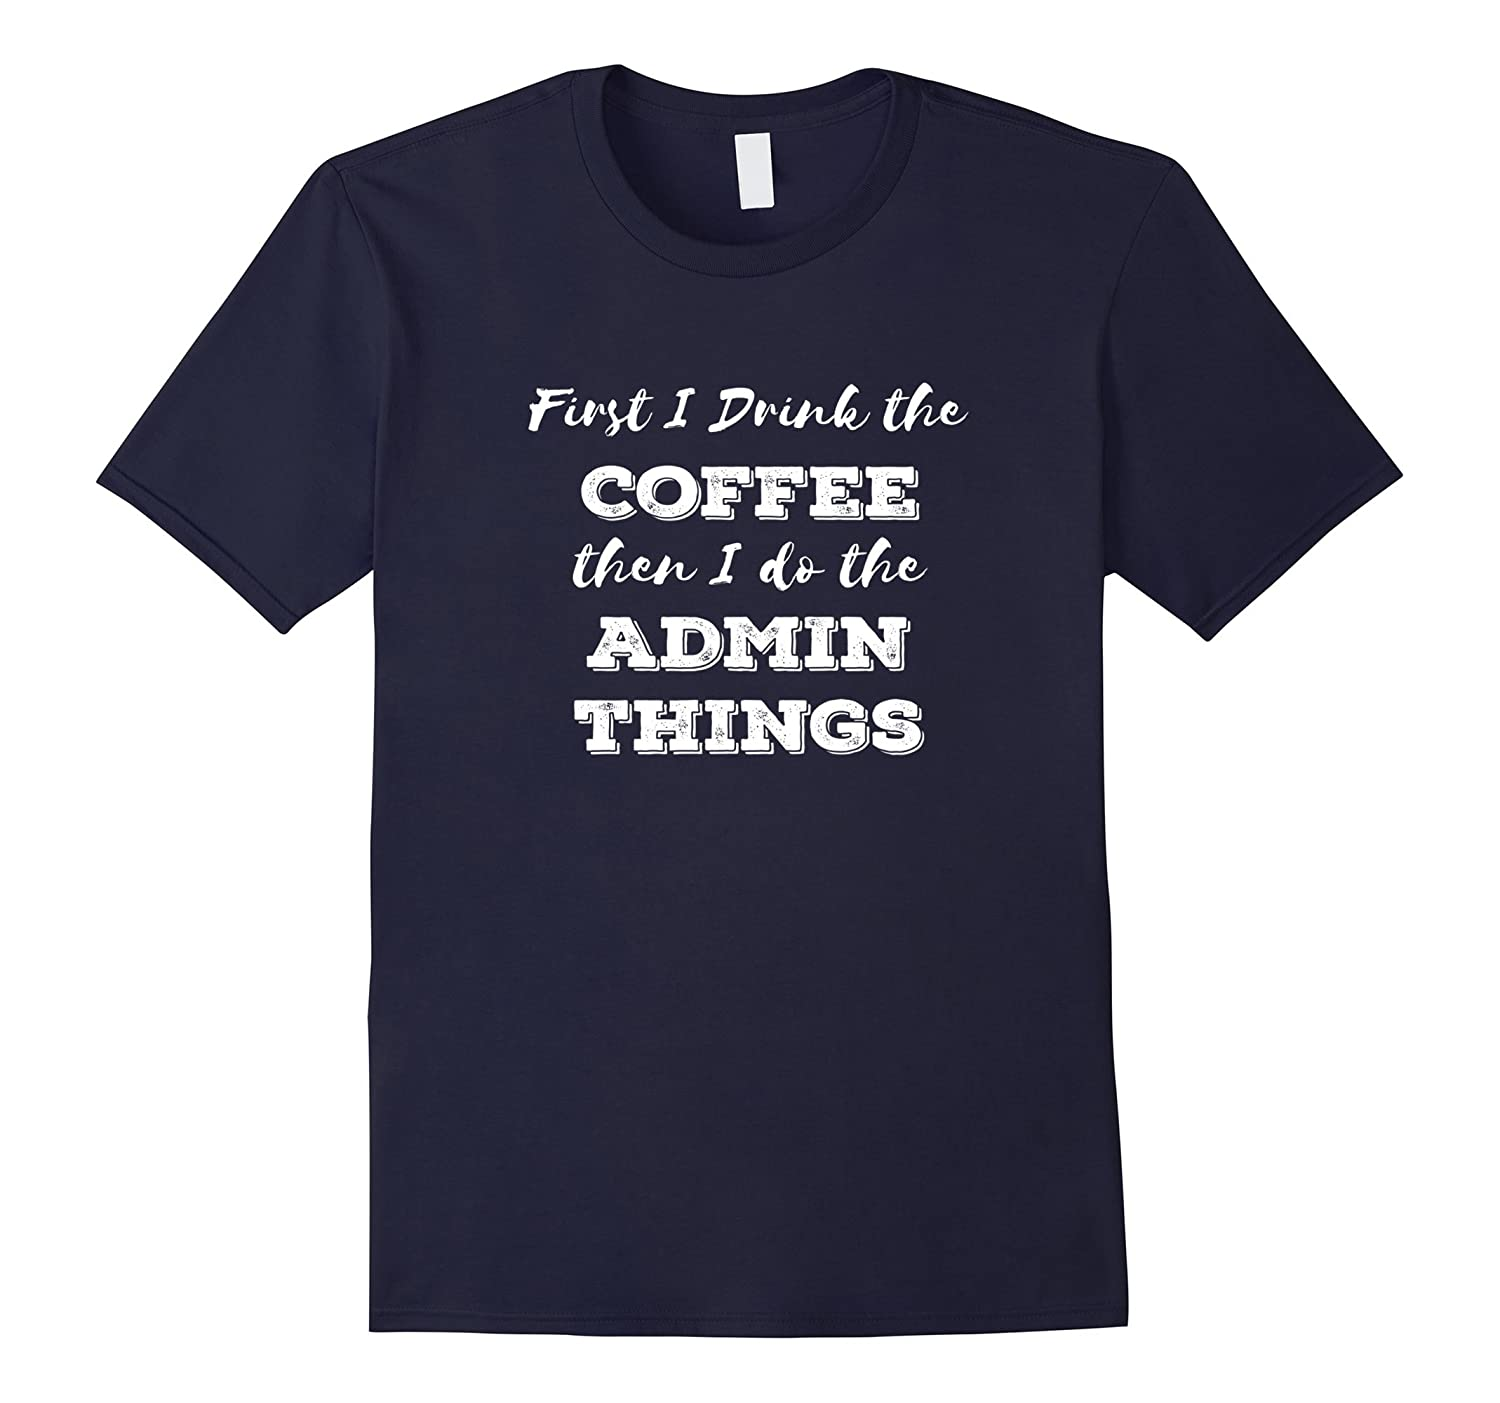 Administrator Shirt Admin Job Gift First I Drink the COFFEE-TJ